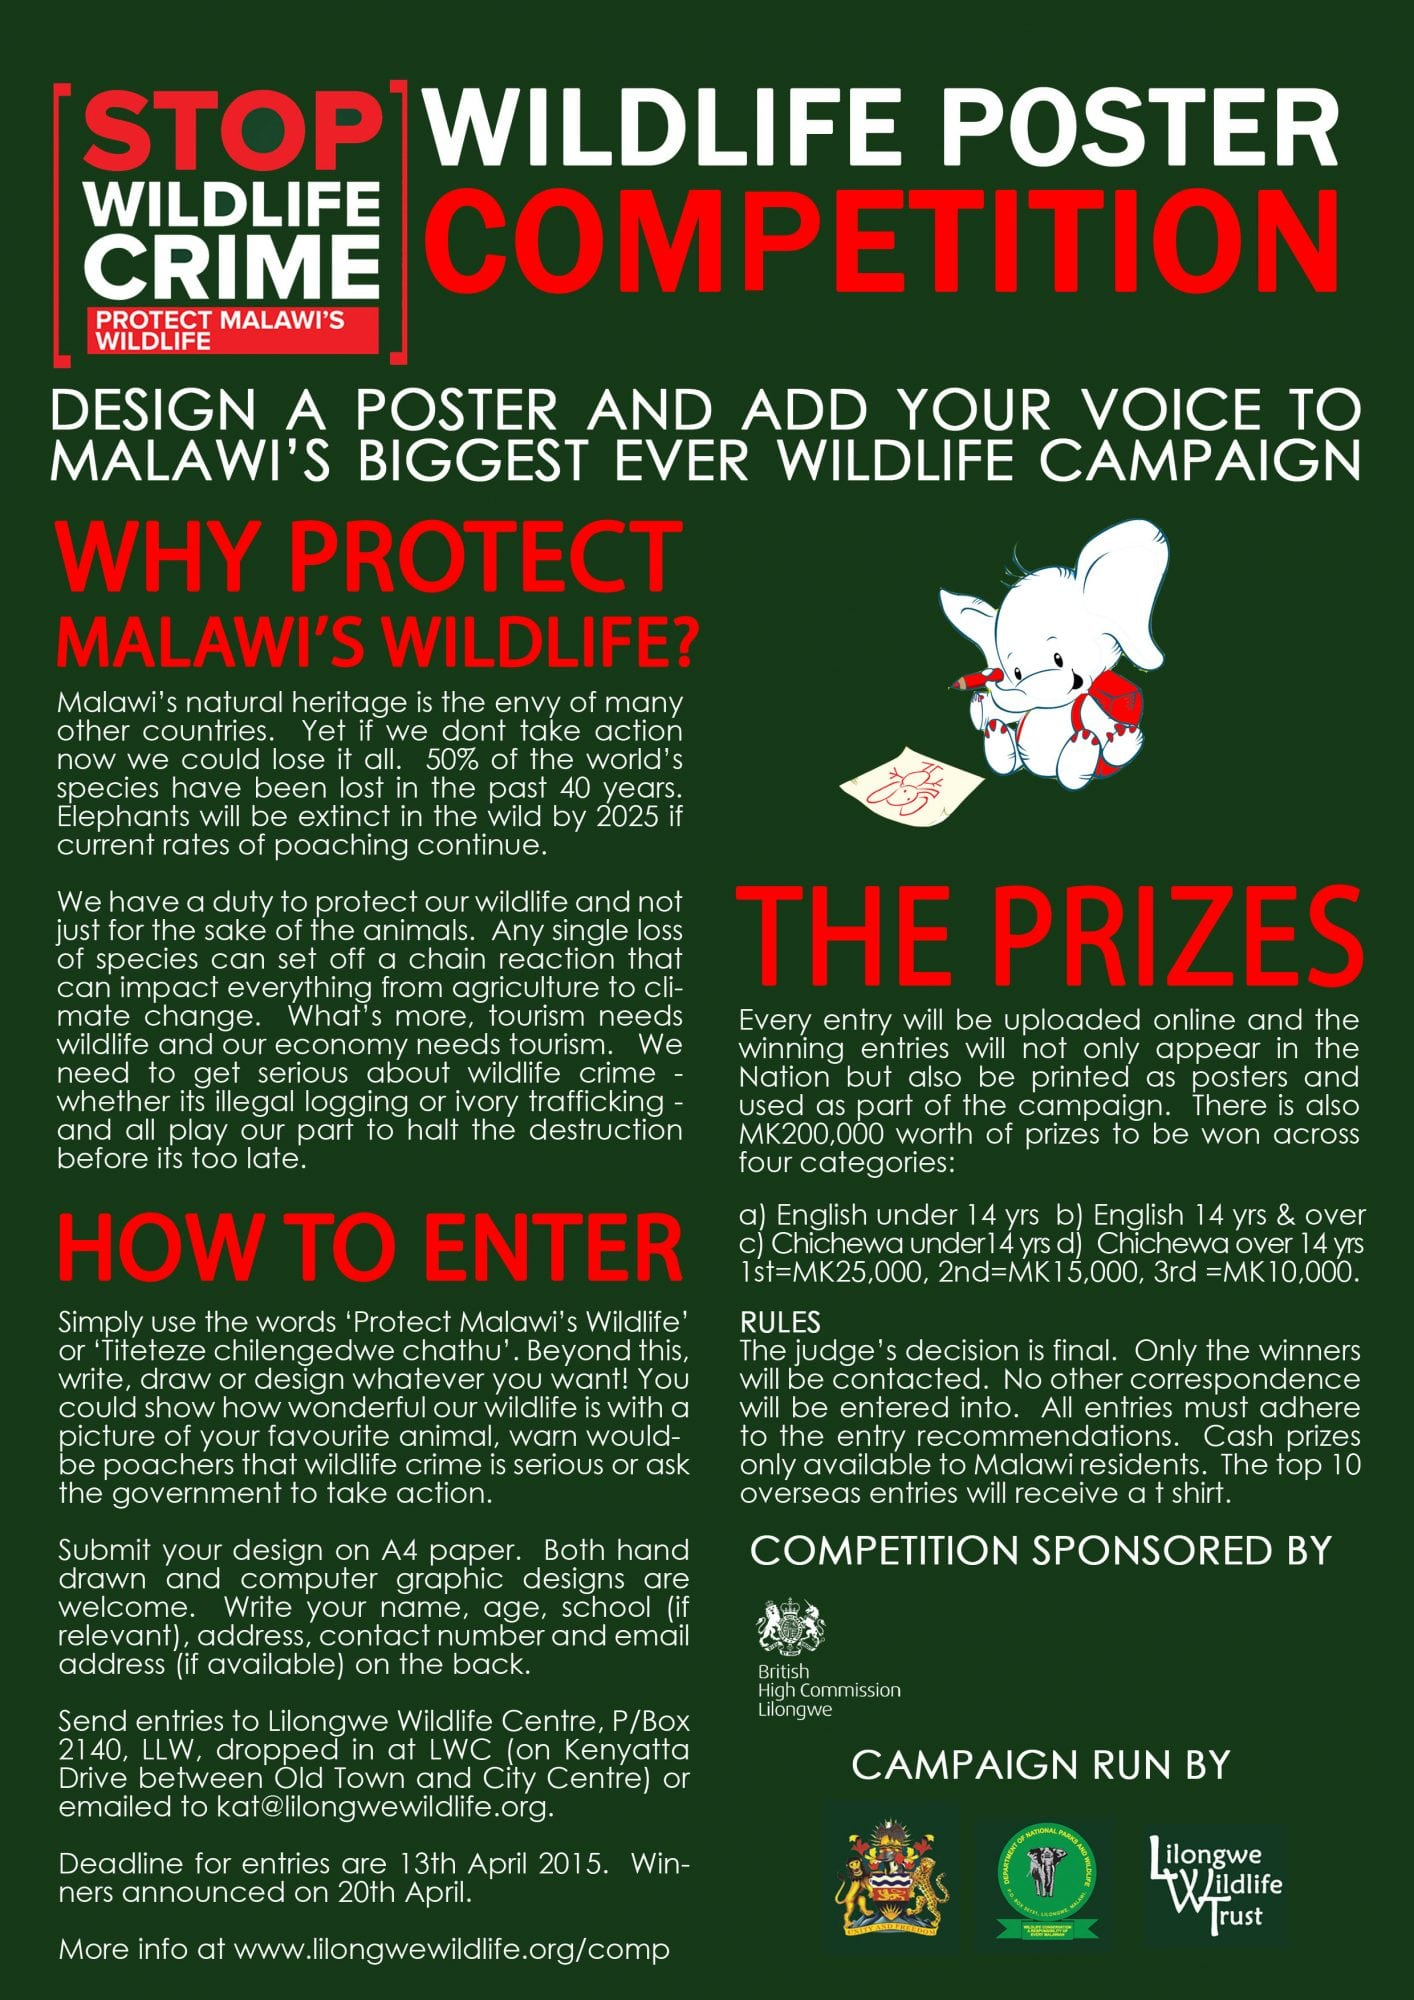 Poster design rules - Design A Poster And Add Your Voice To Malawi S Biggest Ever Wildlife Campaign